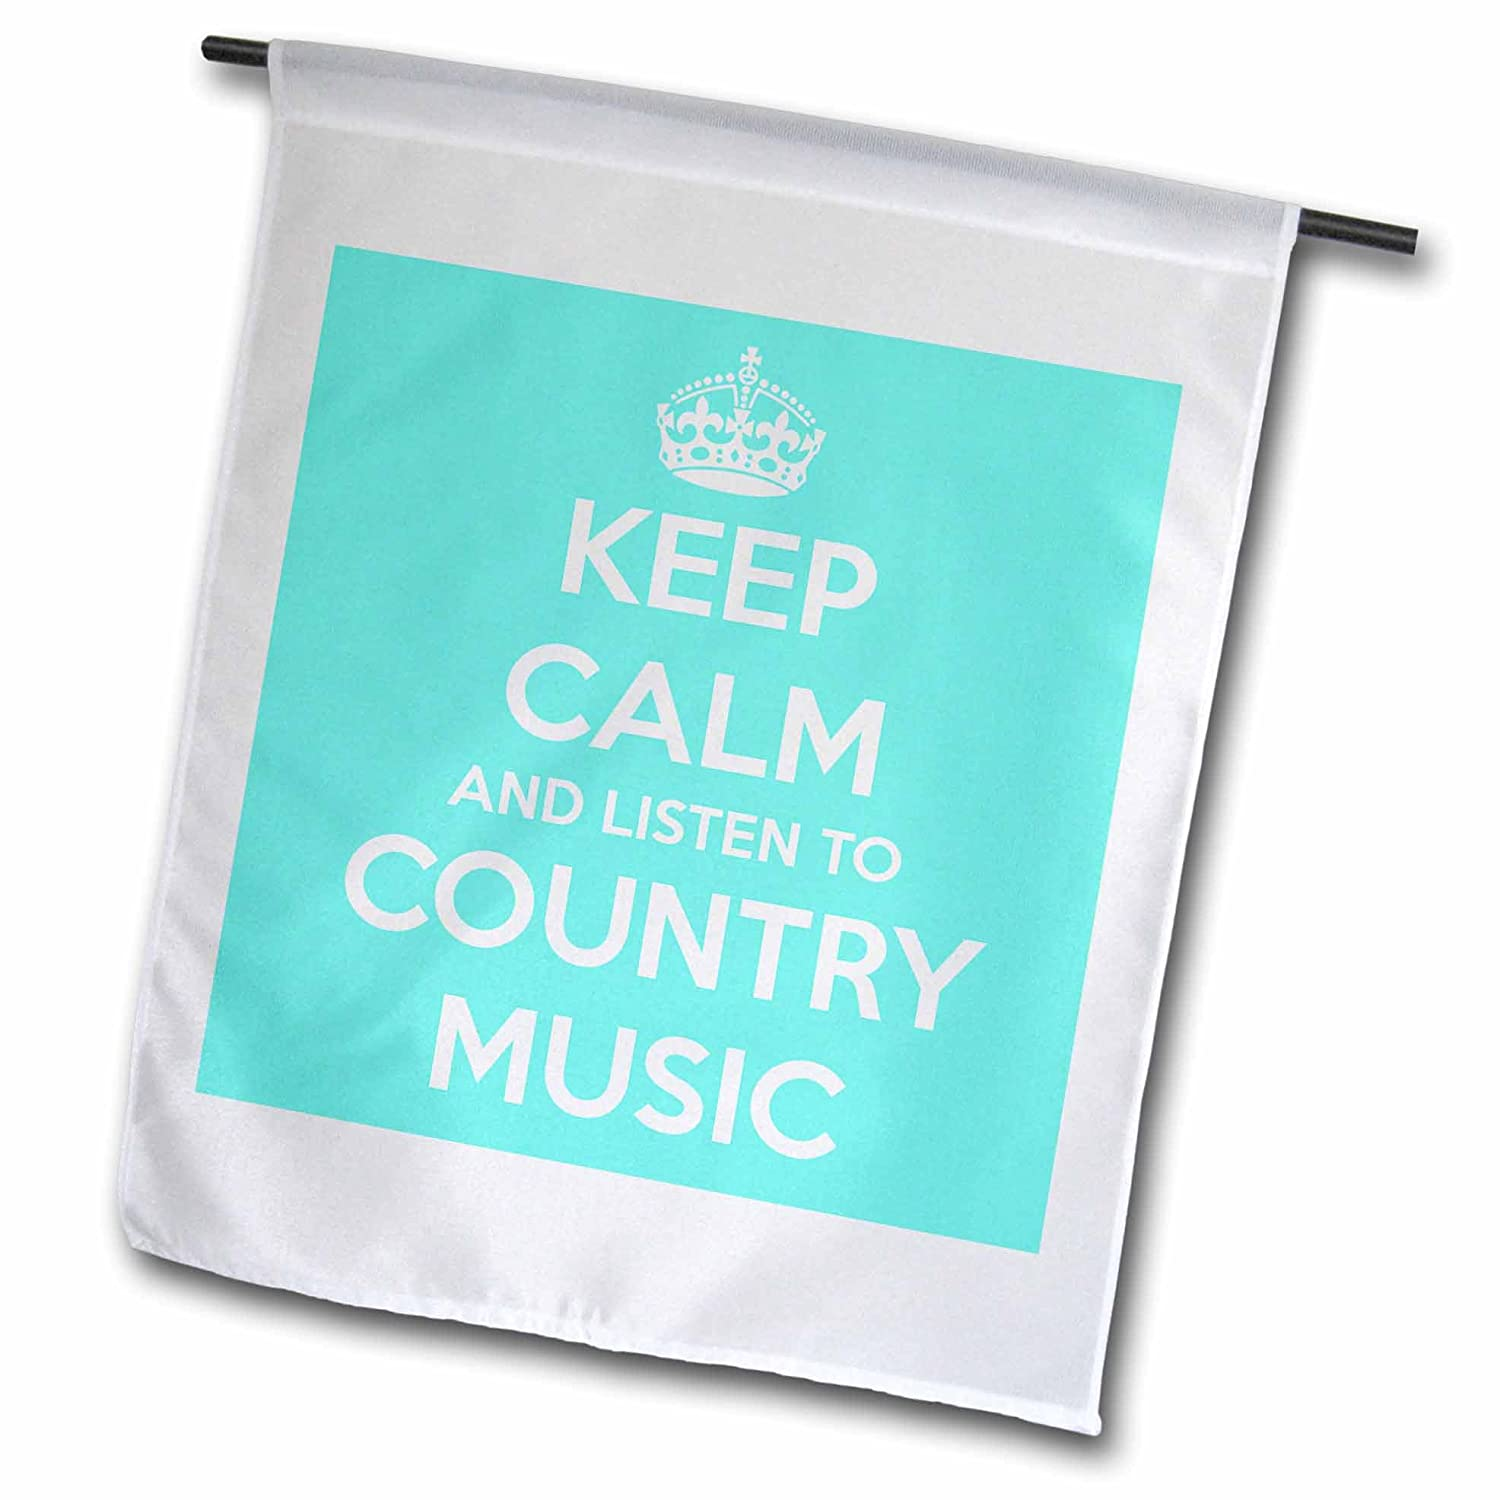 3dRose fl_173403_1 Keep Calm and Listen to Country Music. Turquoise and White Garden Flag, 12 by 18-Inch